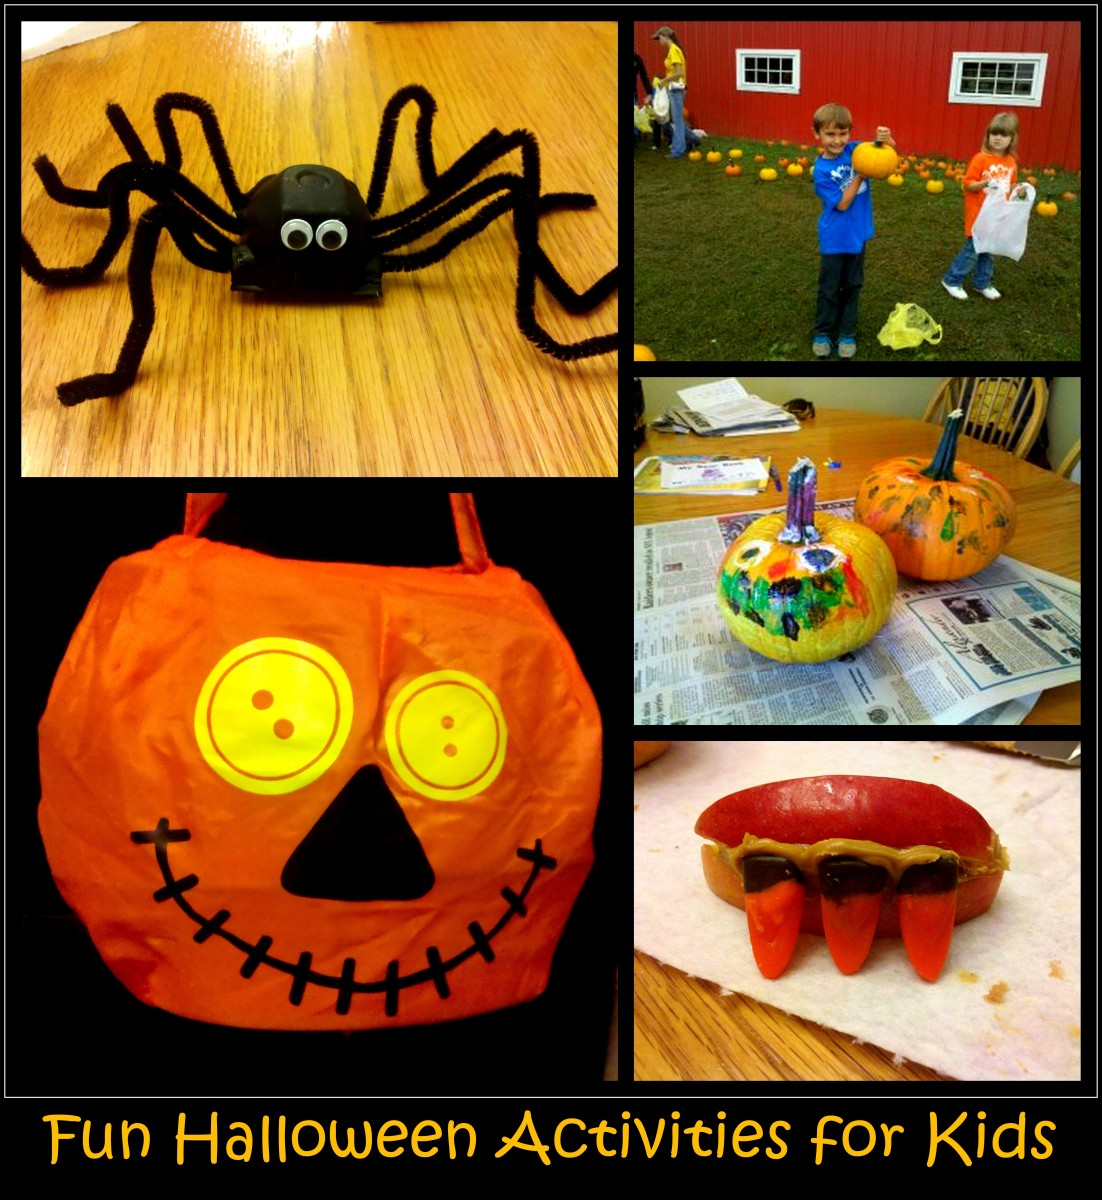 5 Fun Halloween Activities for Children